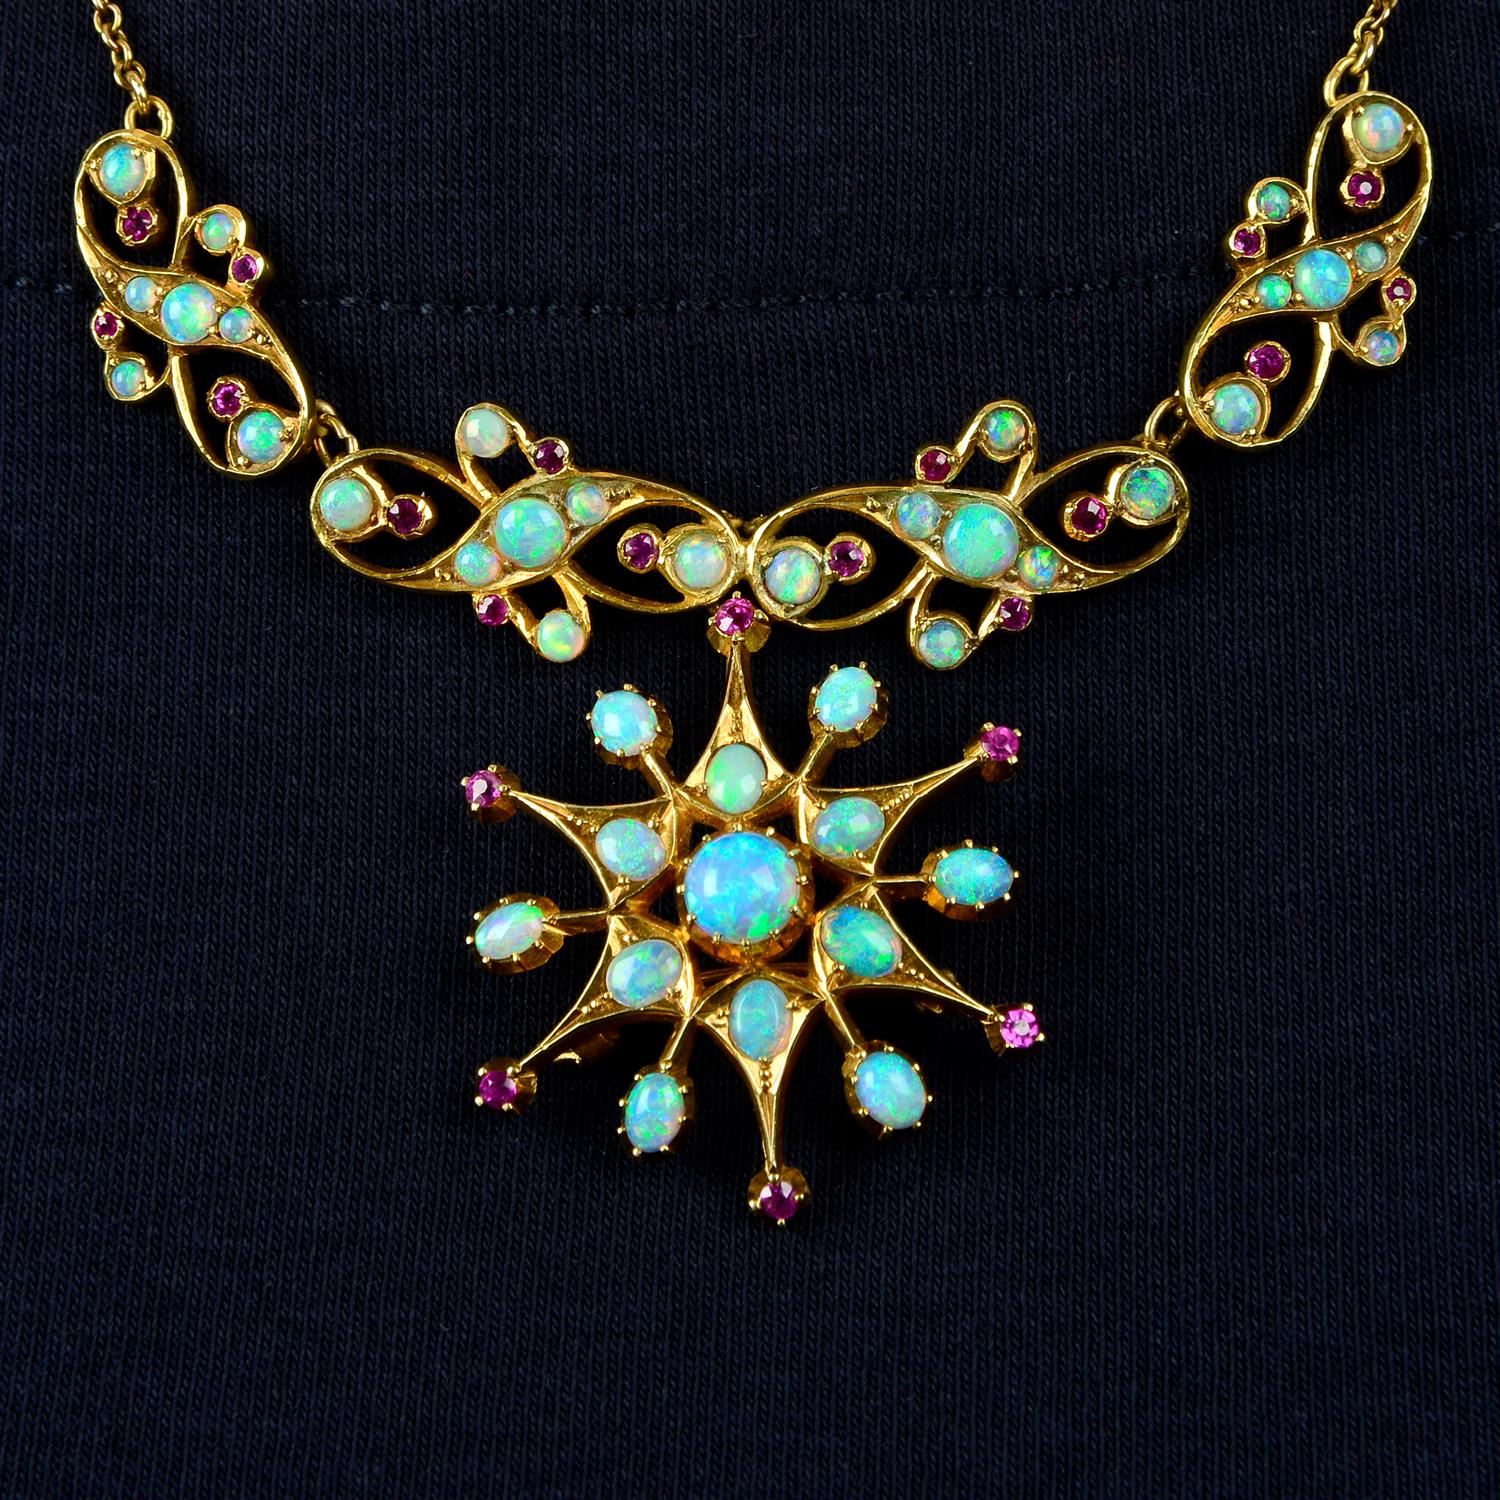 An early 20th century 15ct gold opal and ruby necklace.